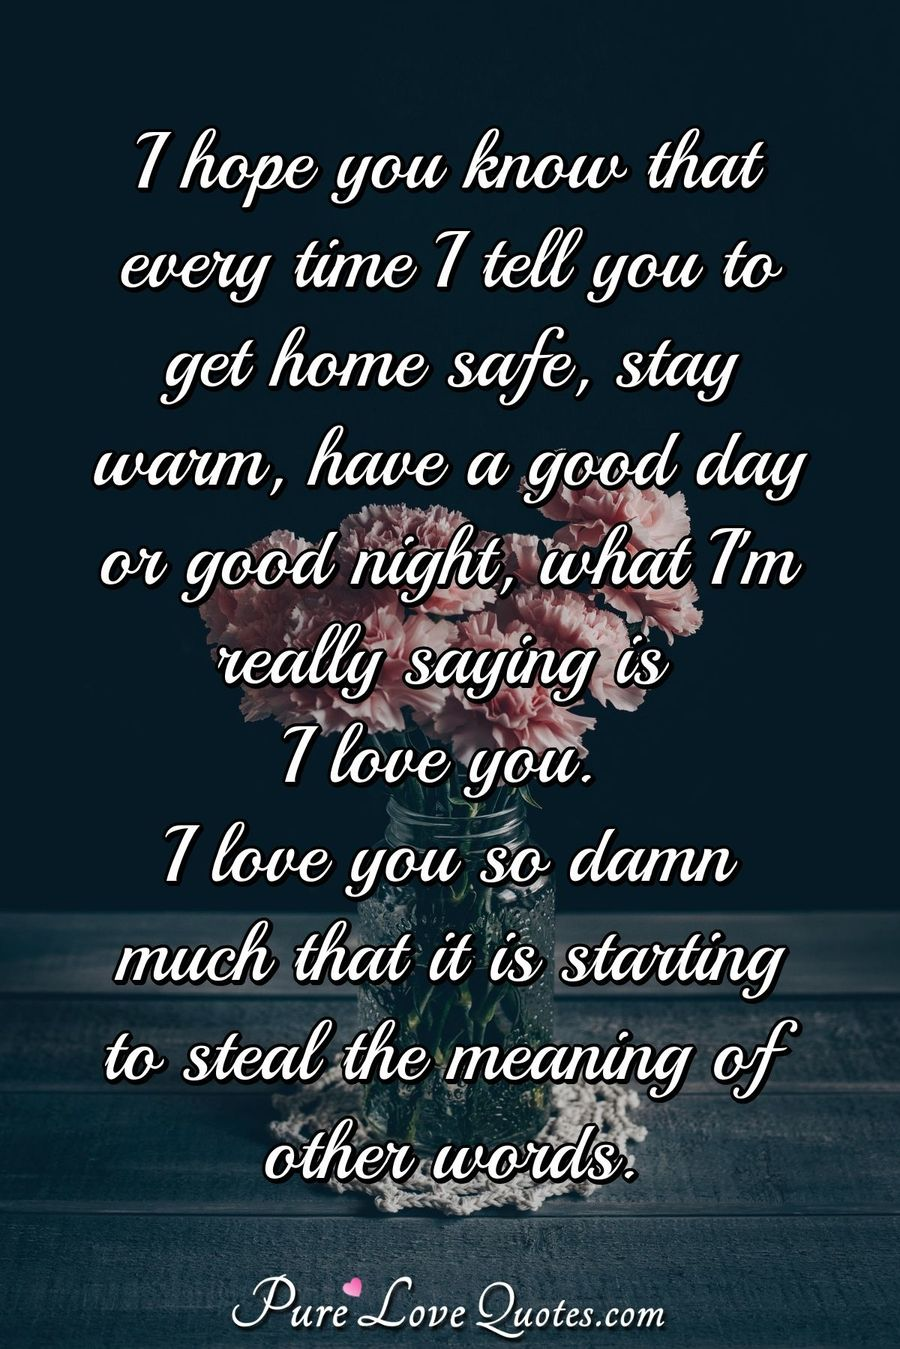 I hope you know that every time I tell you to get home safe, stay warm, have a good day or good night, what I'm really saying is I love you. I love you so damn much that it is starting to steal the meaning of other words. - Anonymous